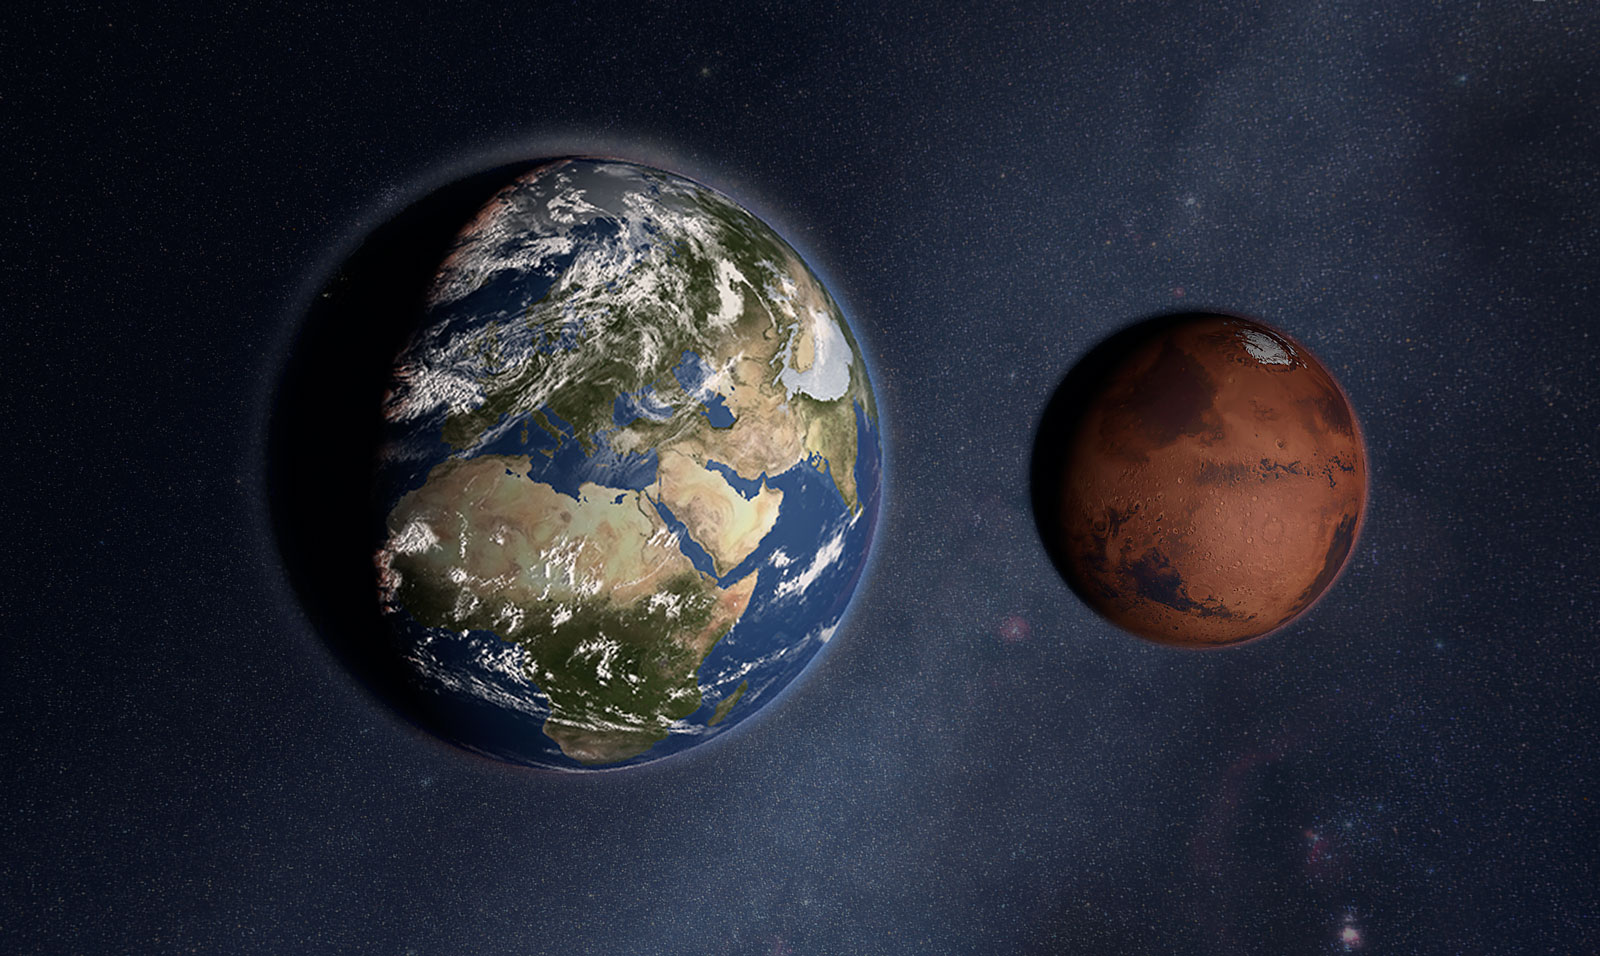 mars compared to earth size - HD1600×956